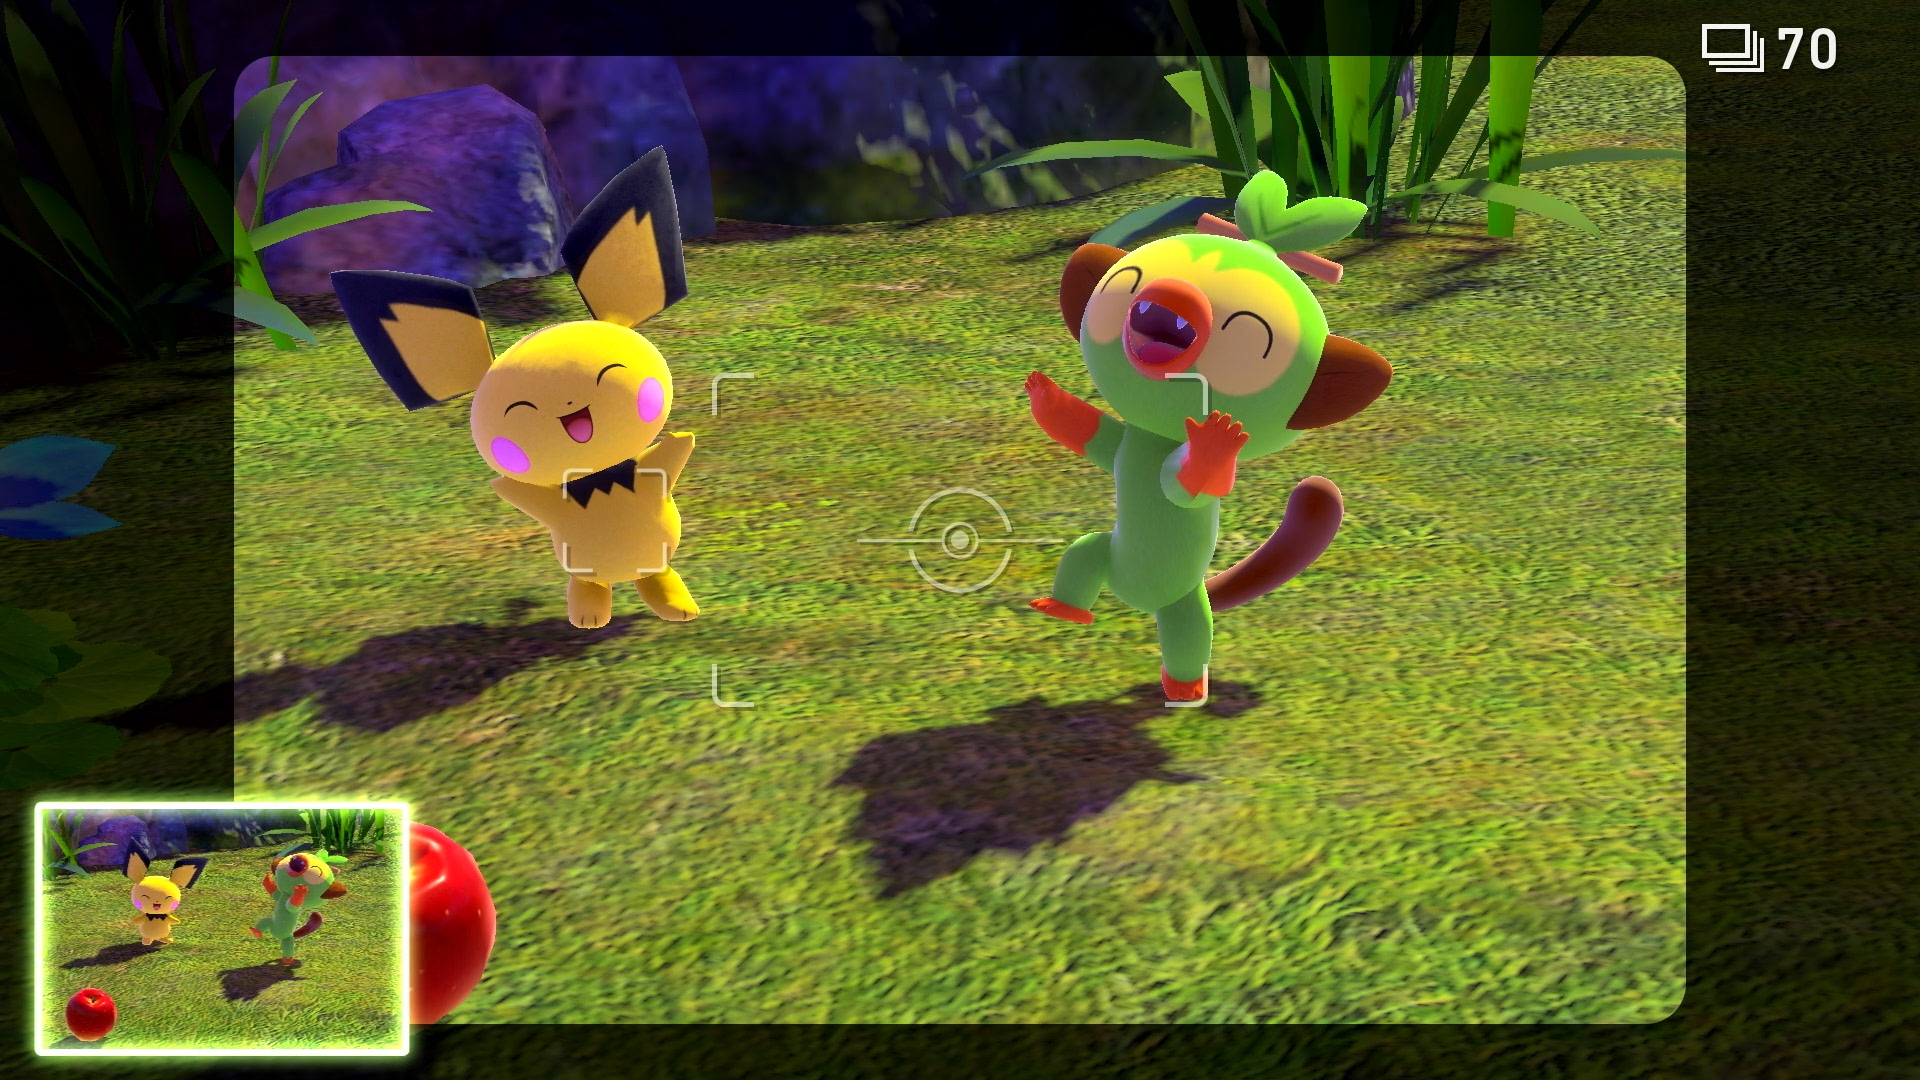 Pichu and Grookey dance in a screenshot from New Pokémon Snap